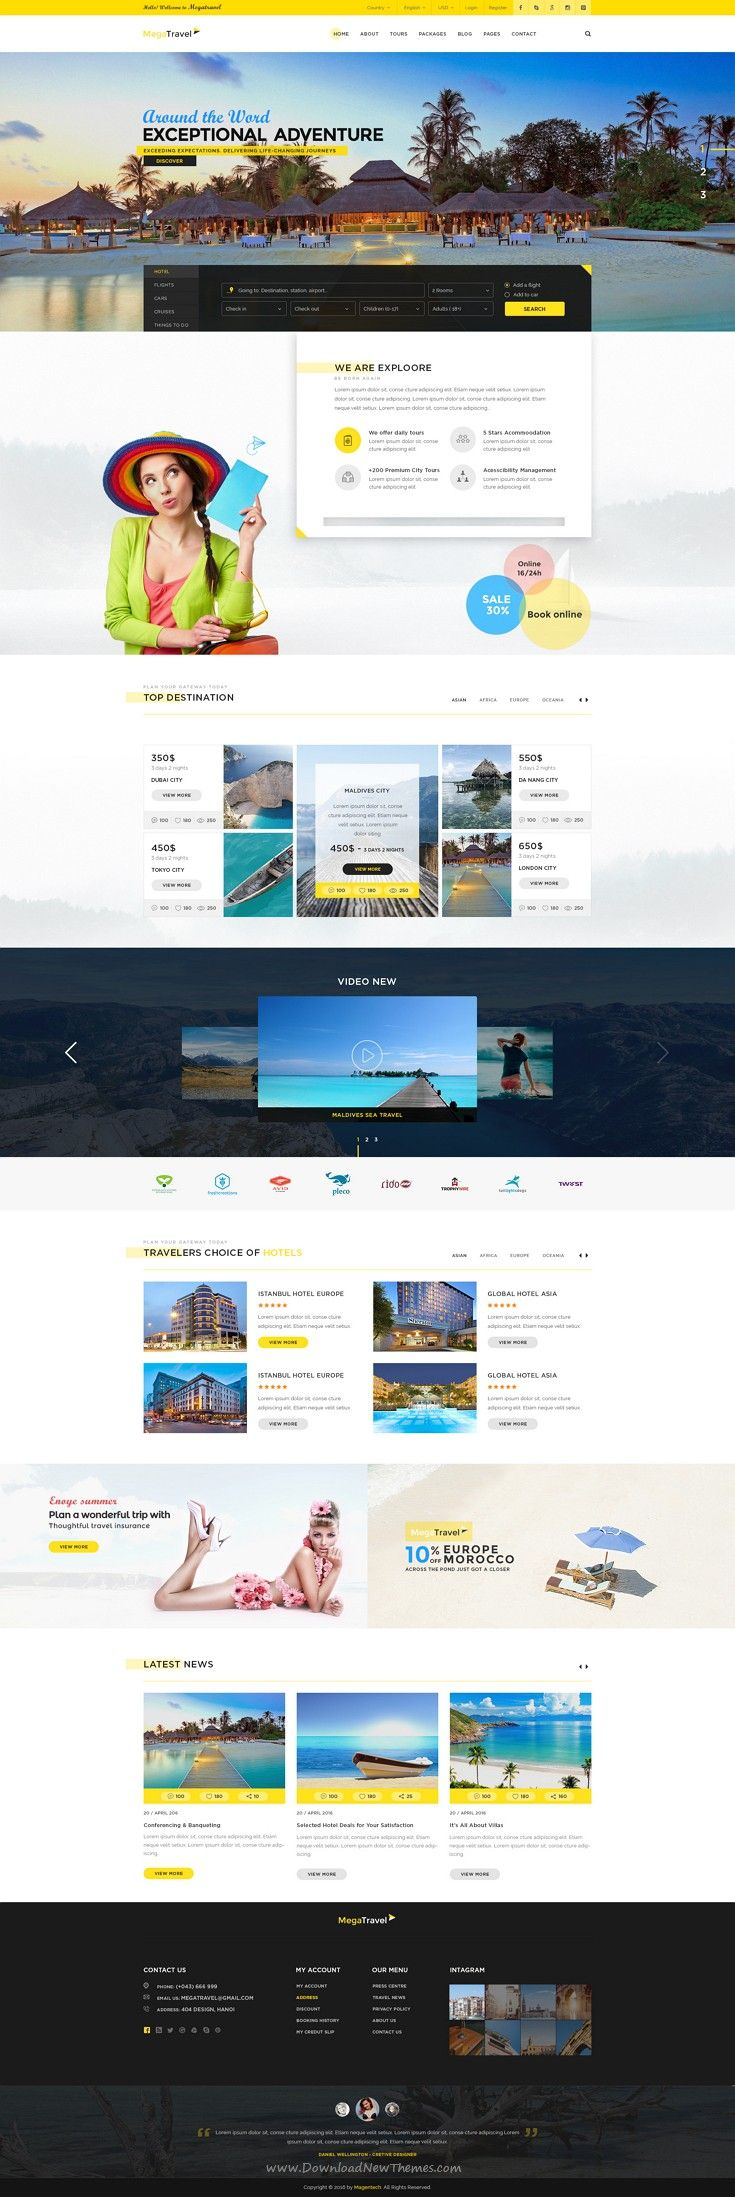 MegaTravel a clean and professional #PSD #Template is specially designed for travel agency, tour operator and #travel blog.